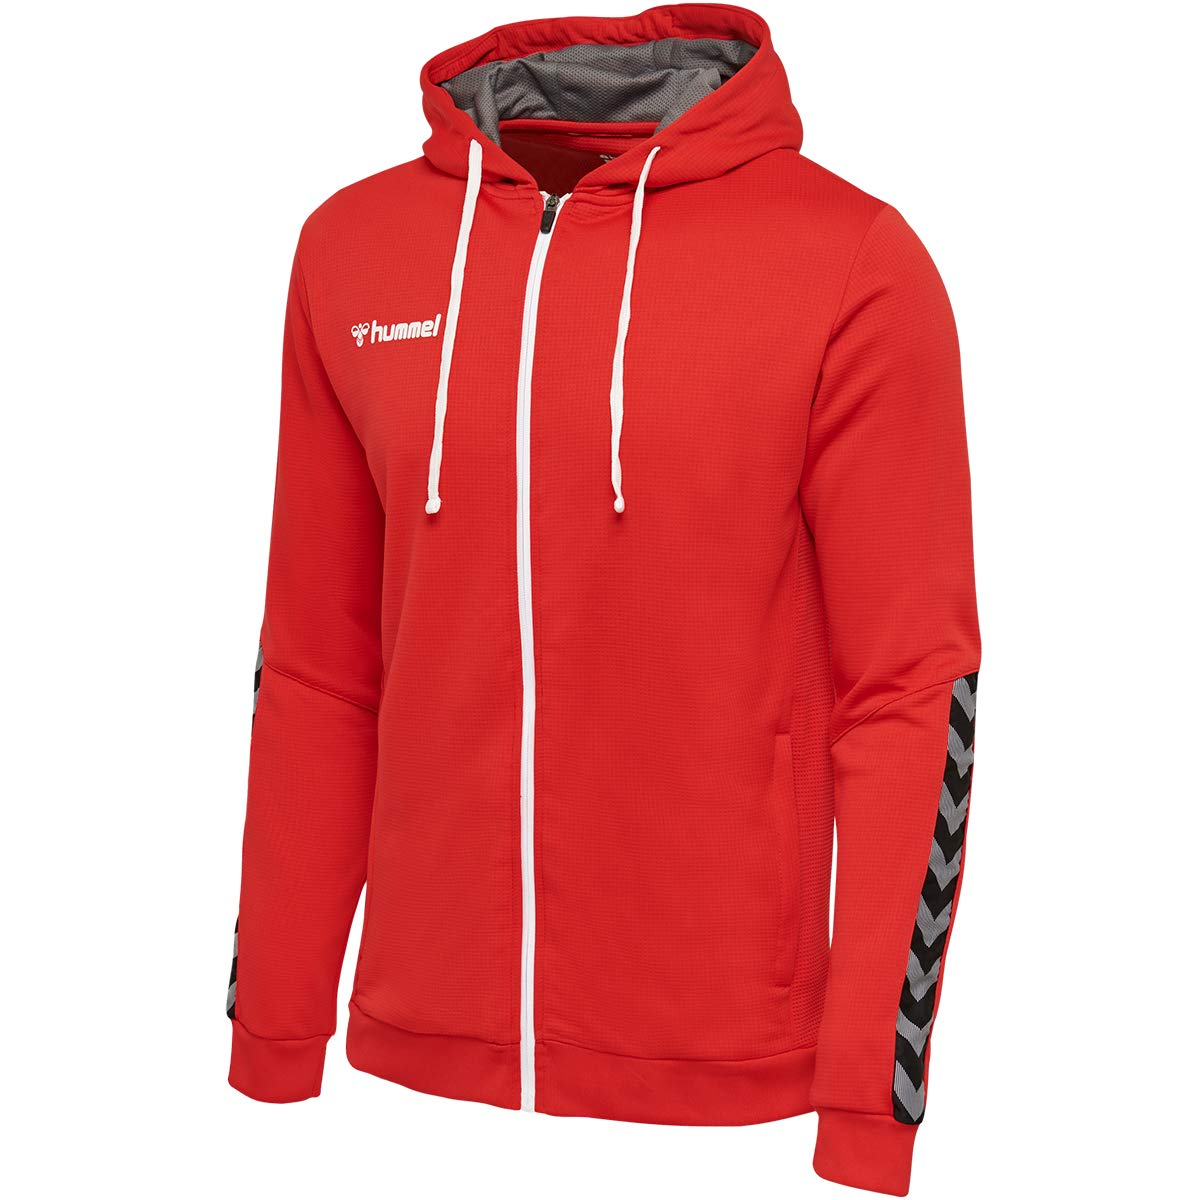 hummel Hmlauthentic Poly Zip Hoodie Sudadera con Capucha, Hombre ...